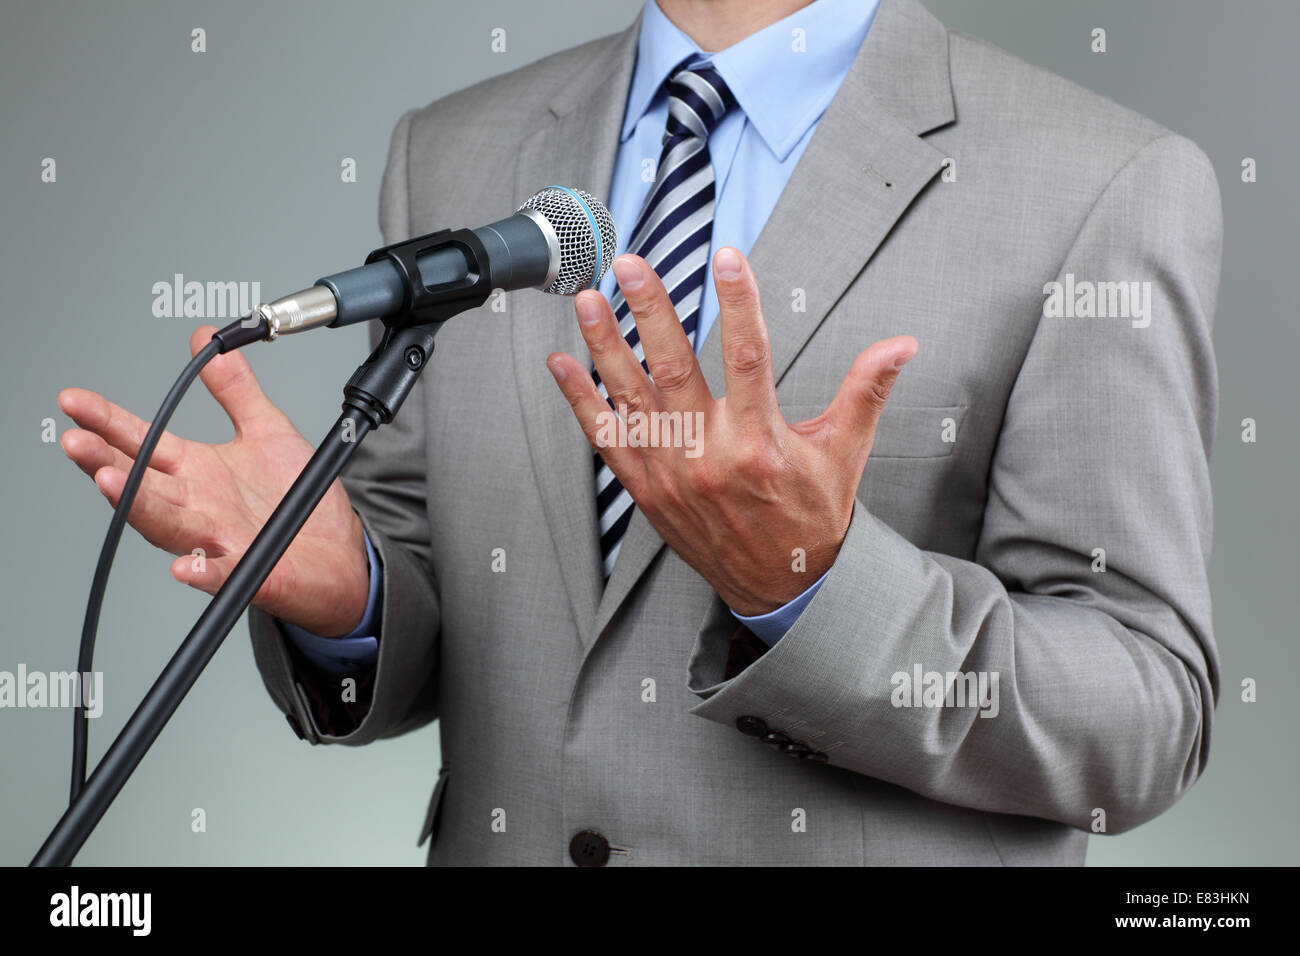 Speech with microphone and hand gesture - Stock Image